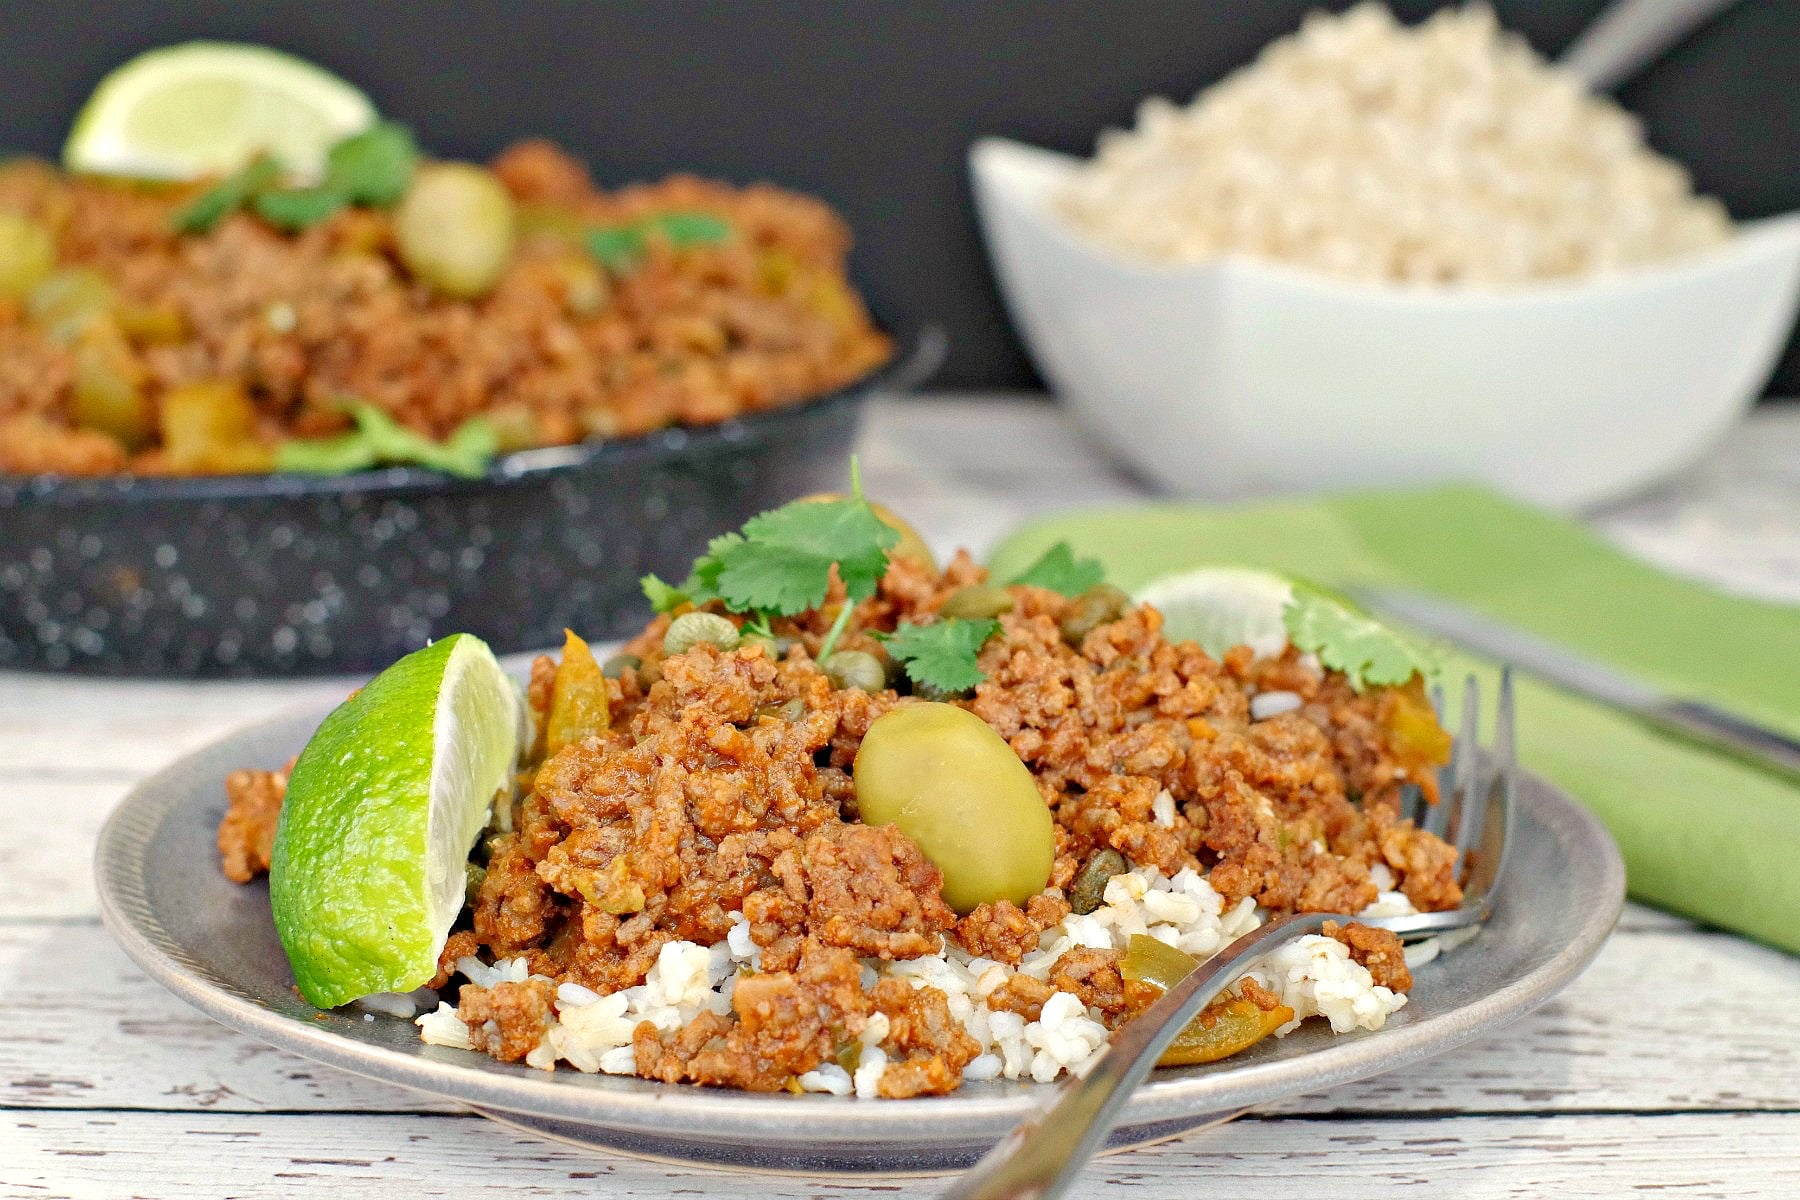 Picadillo over rice with rice and pan of picadillo in background